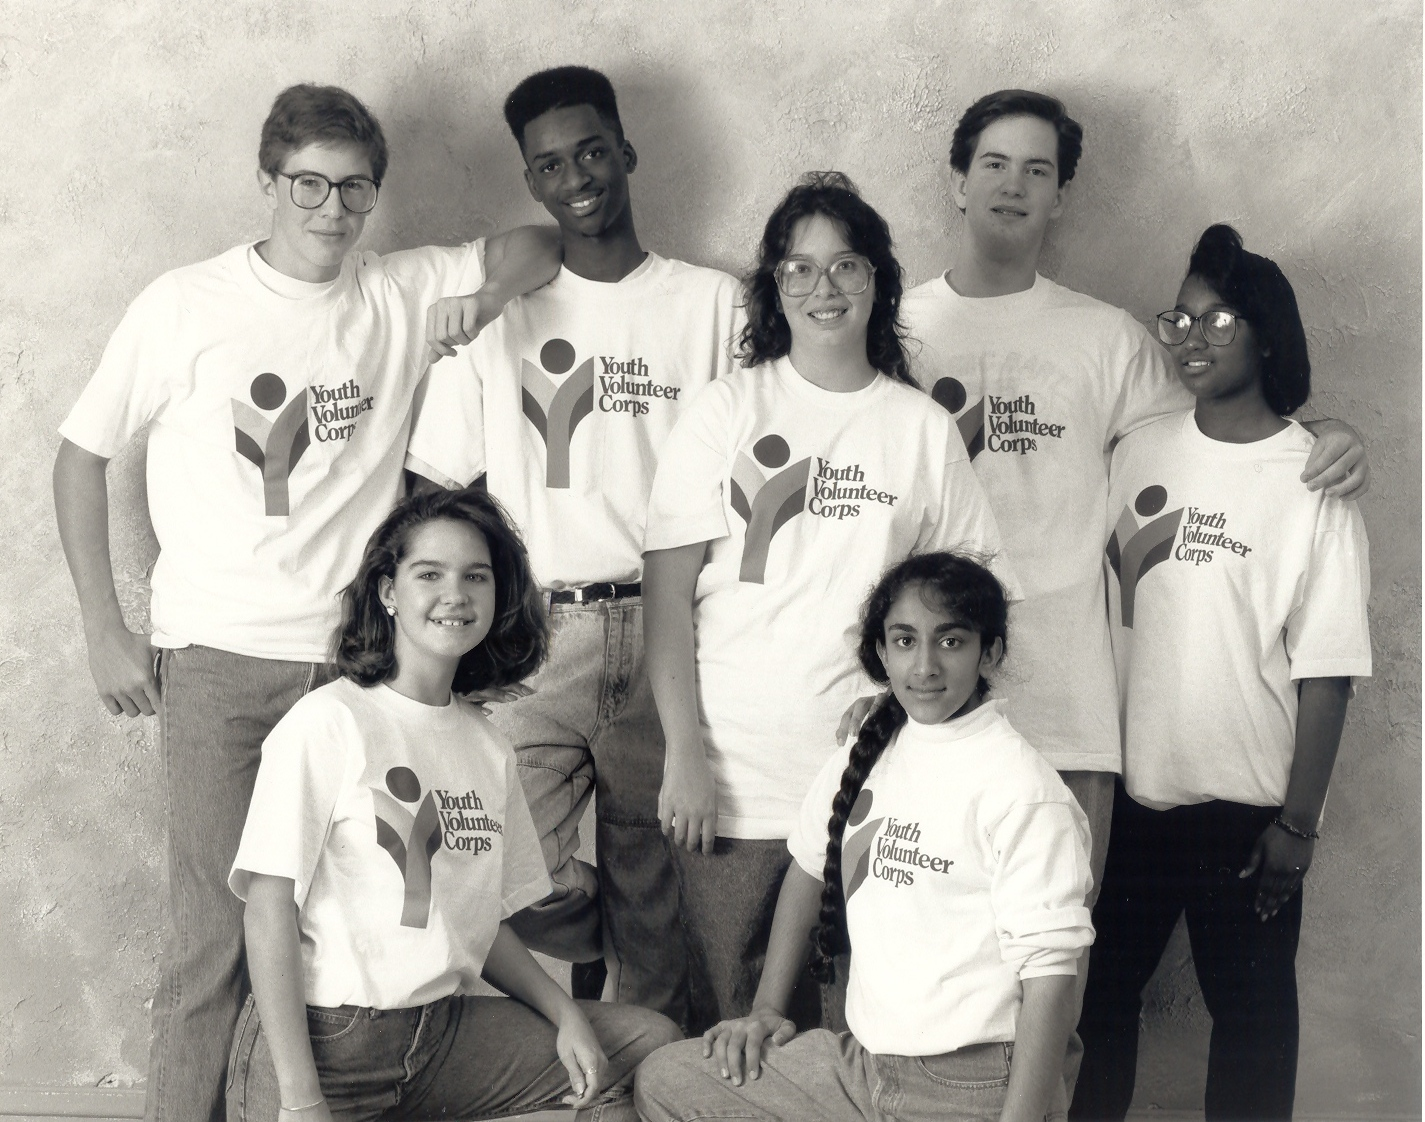 June 8, 1987: The First Day of YVC